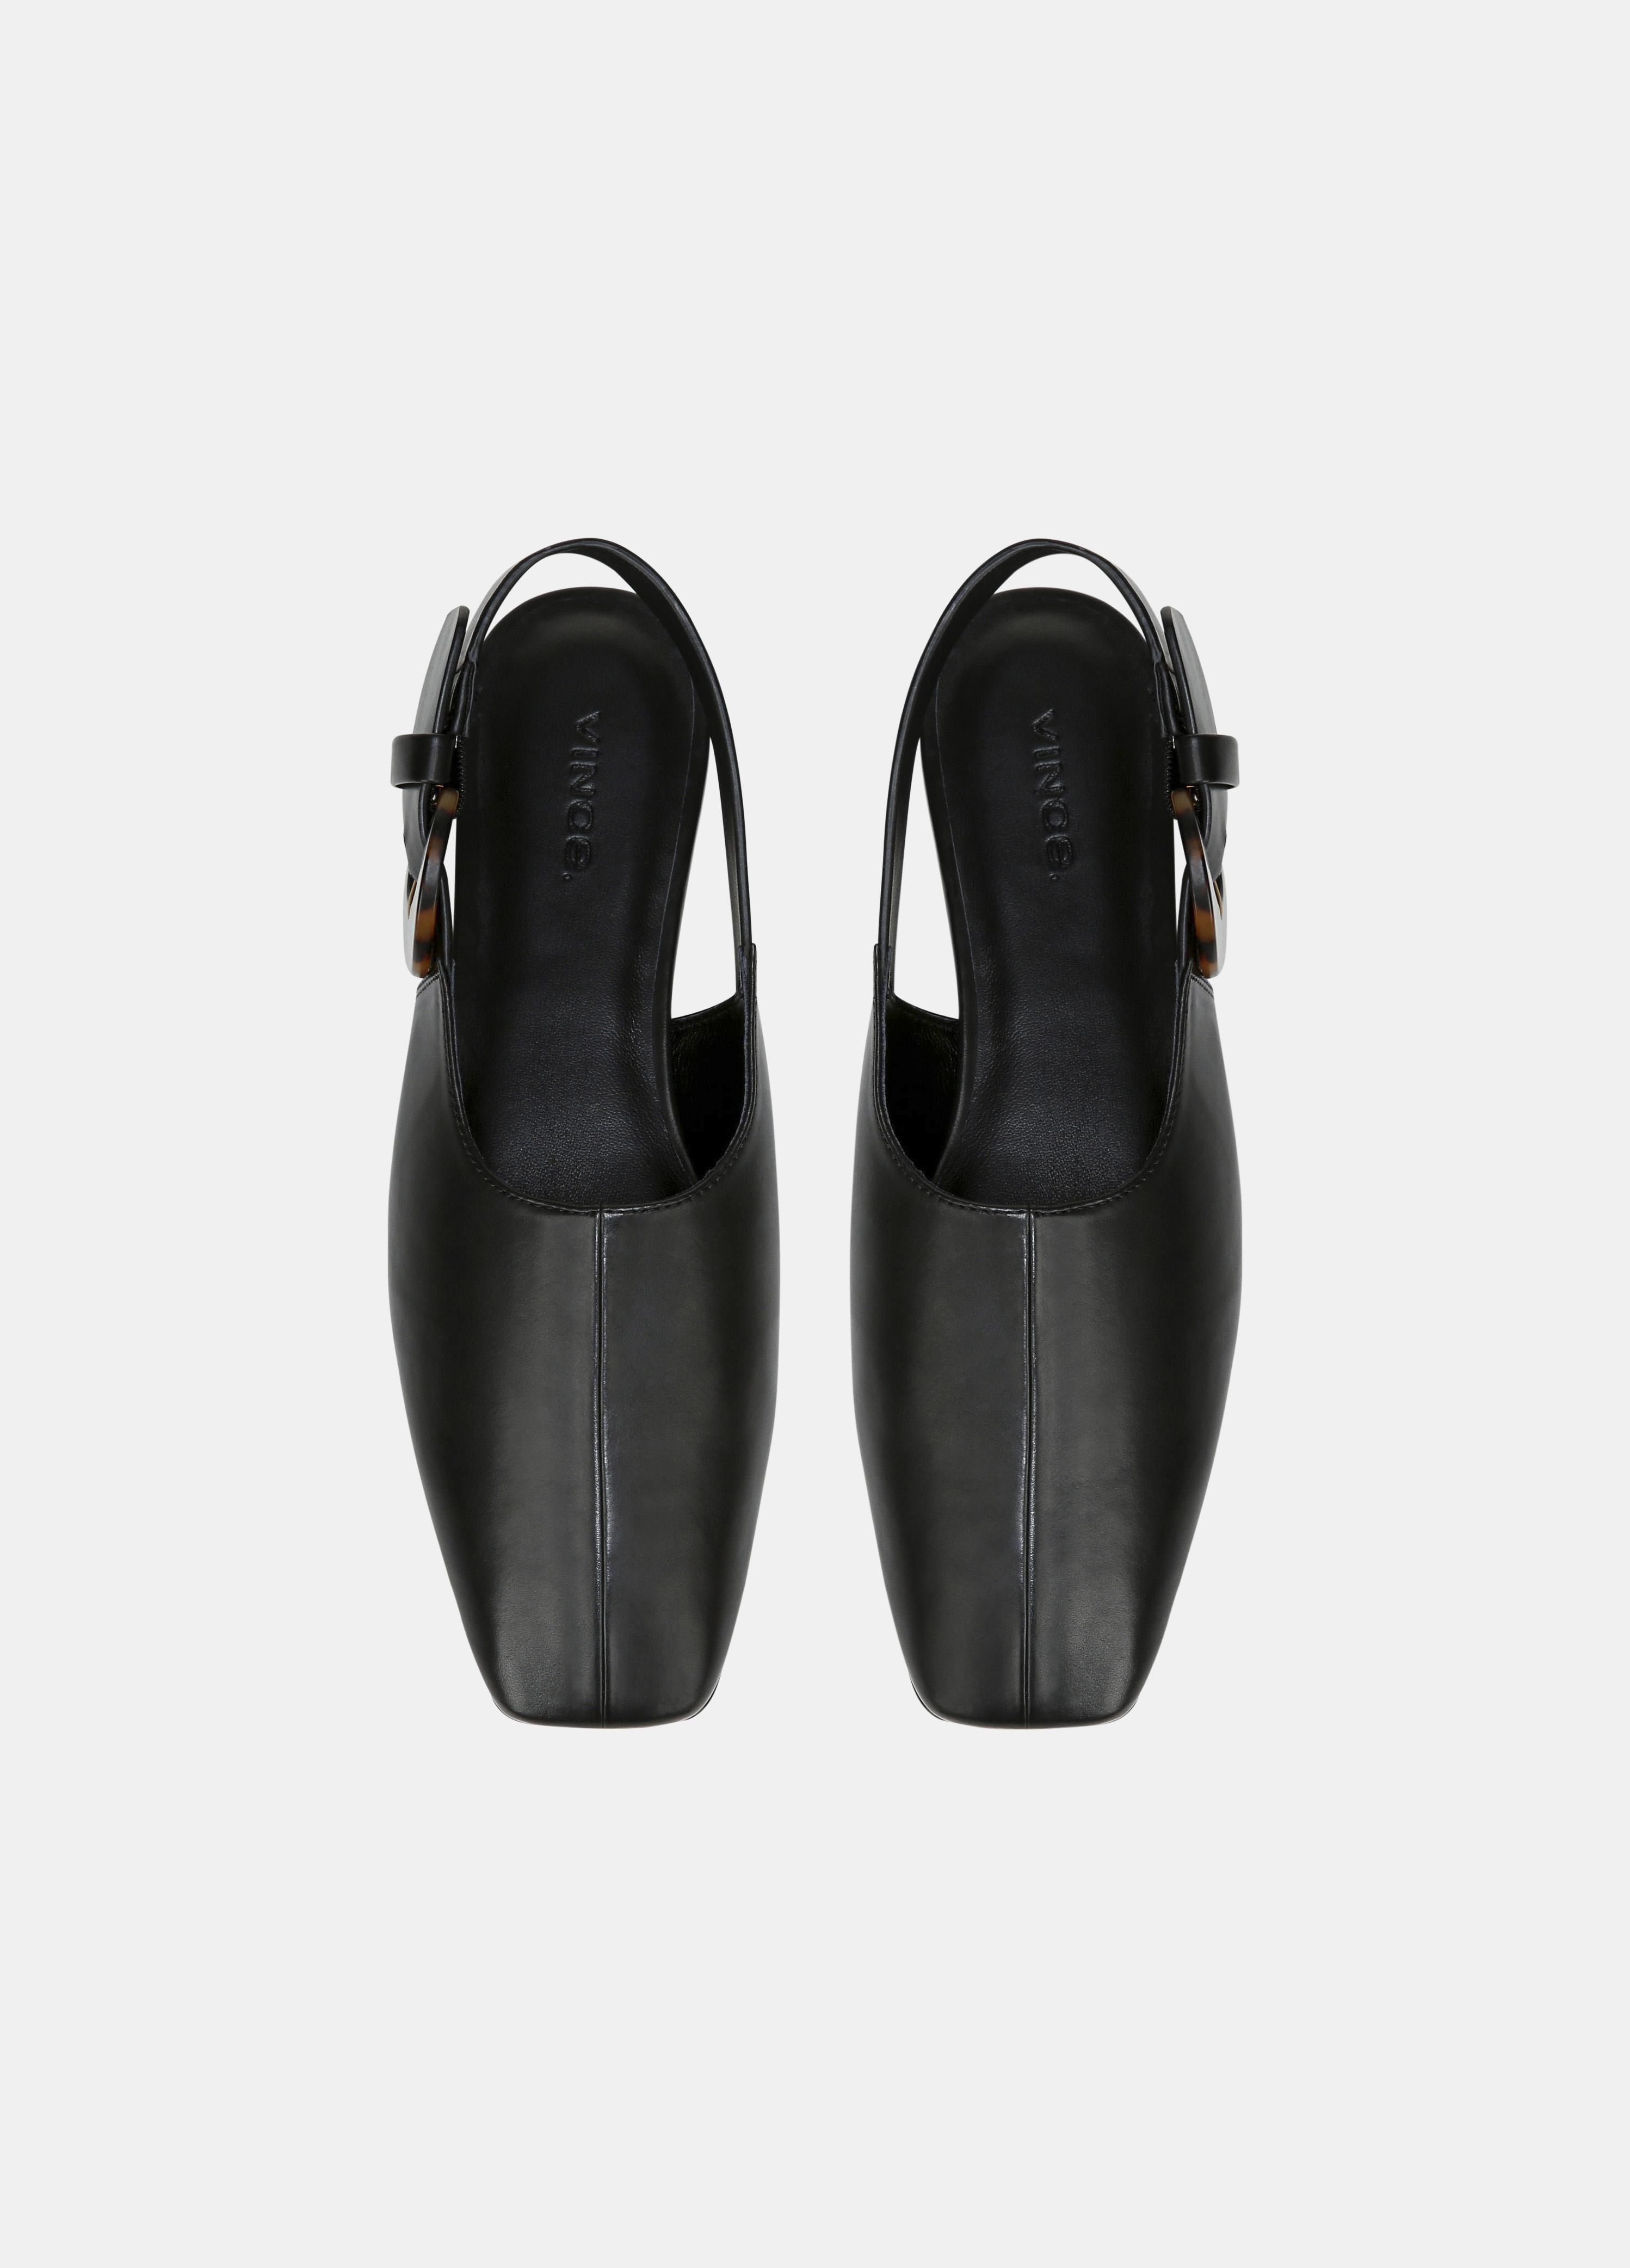 Leather Cadot Buckle Shoe 3